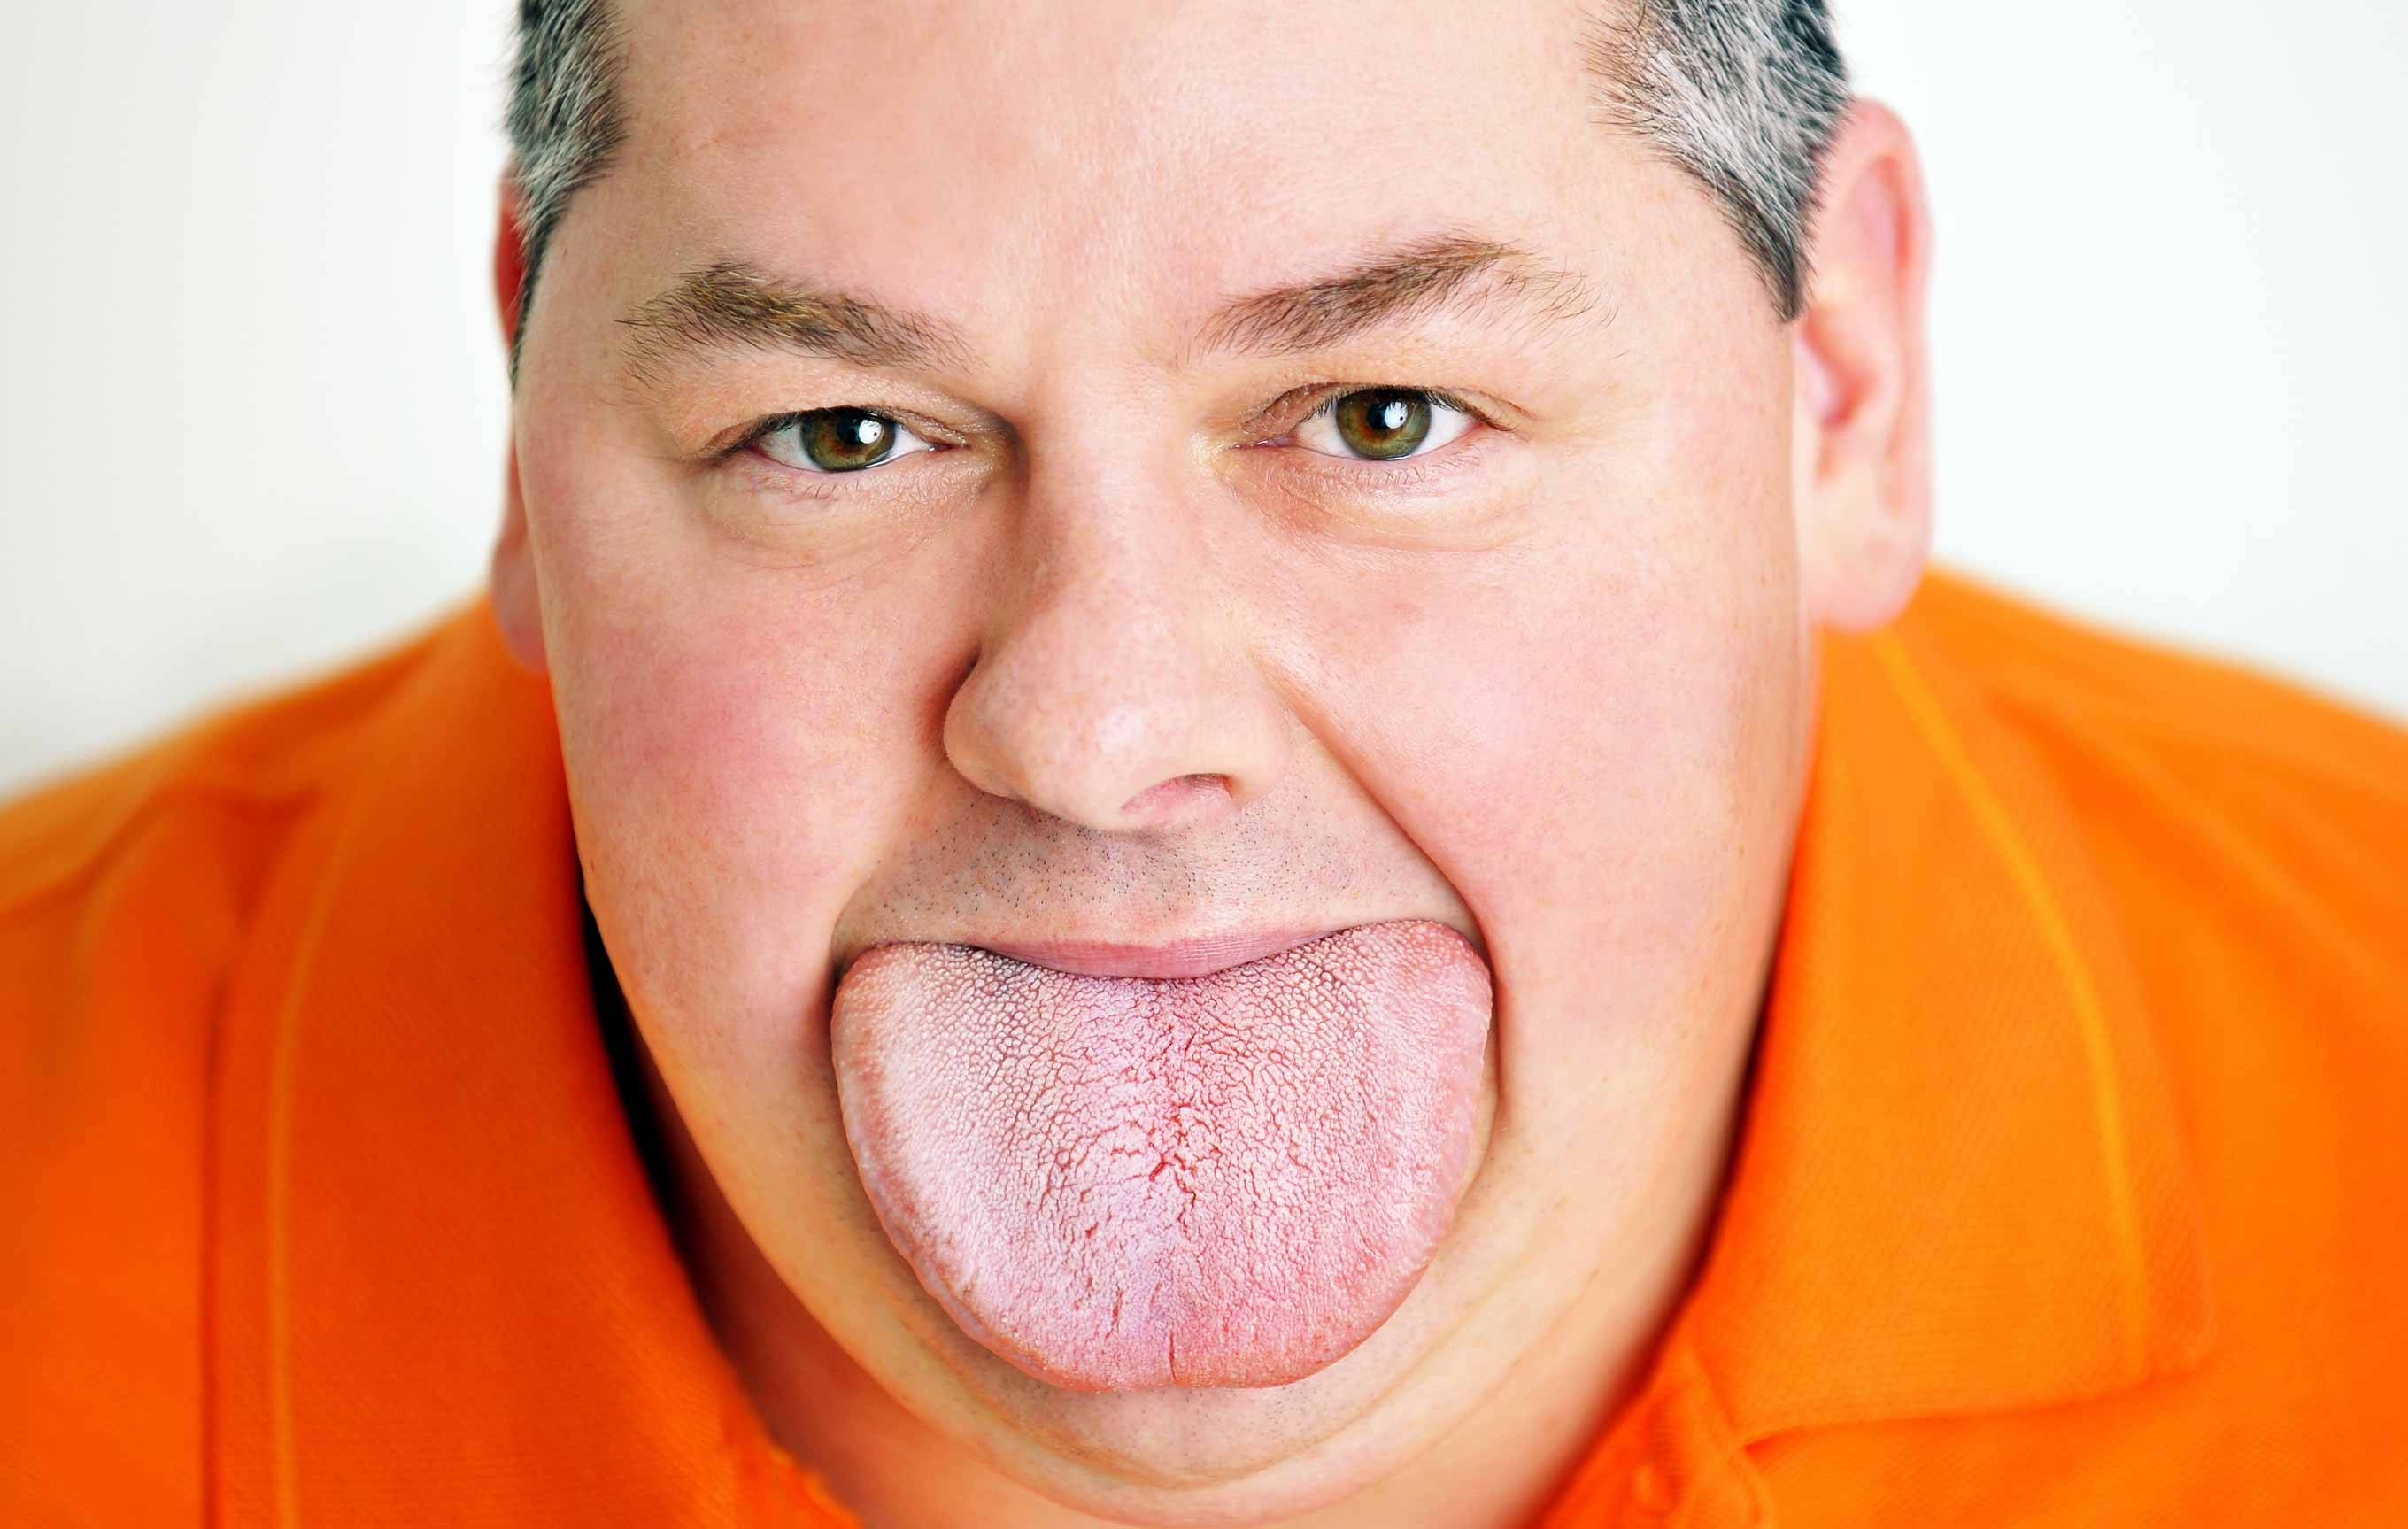 Widest tongue (male)